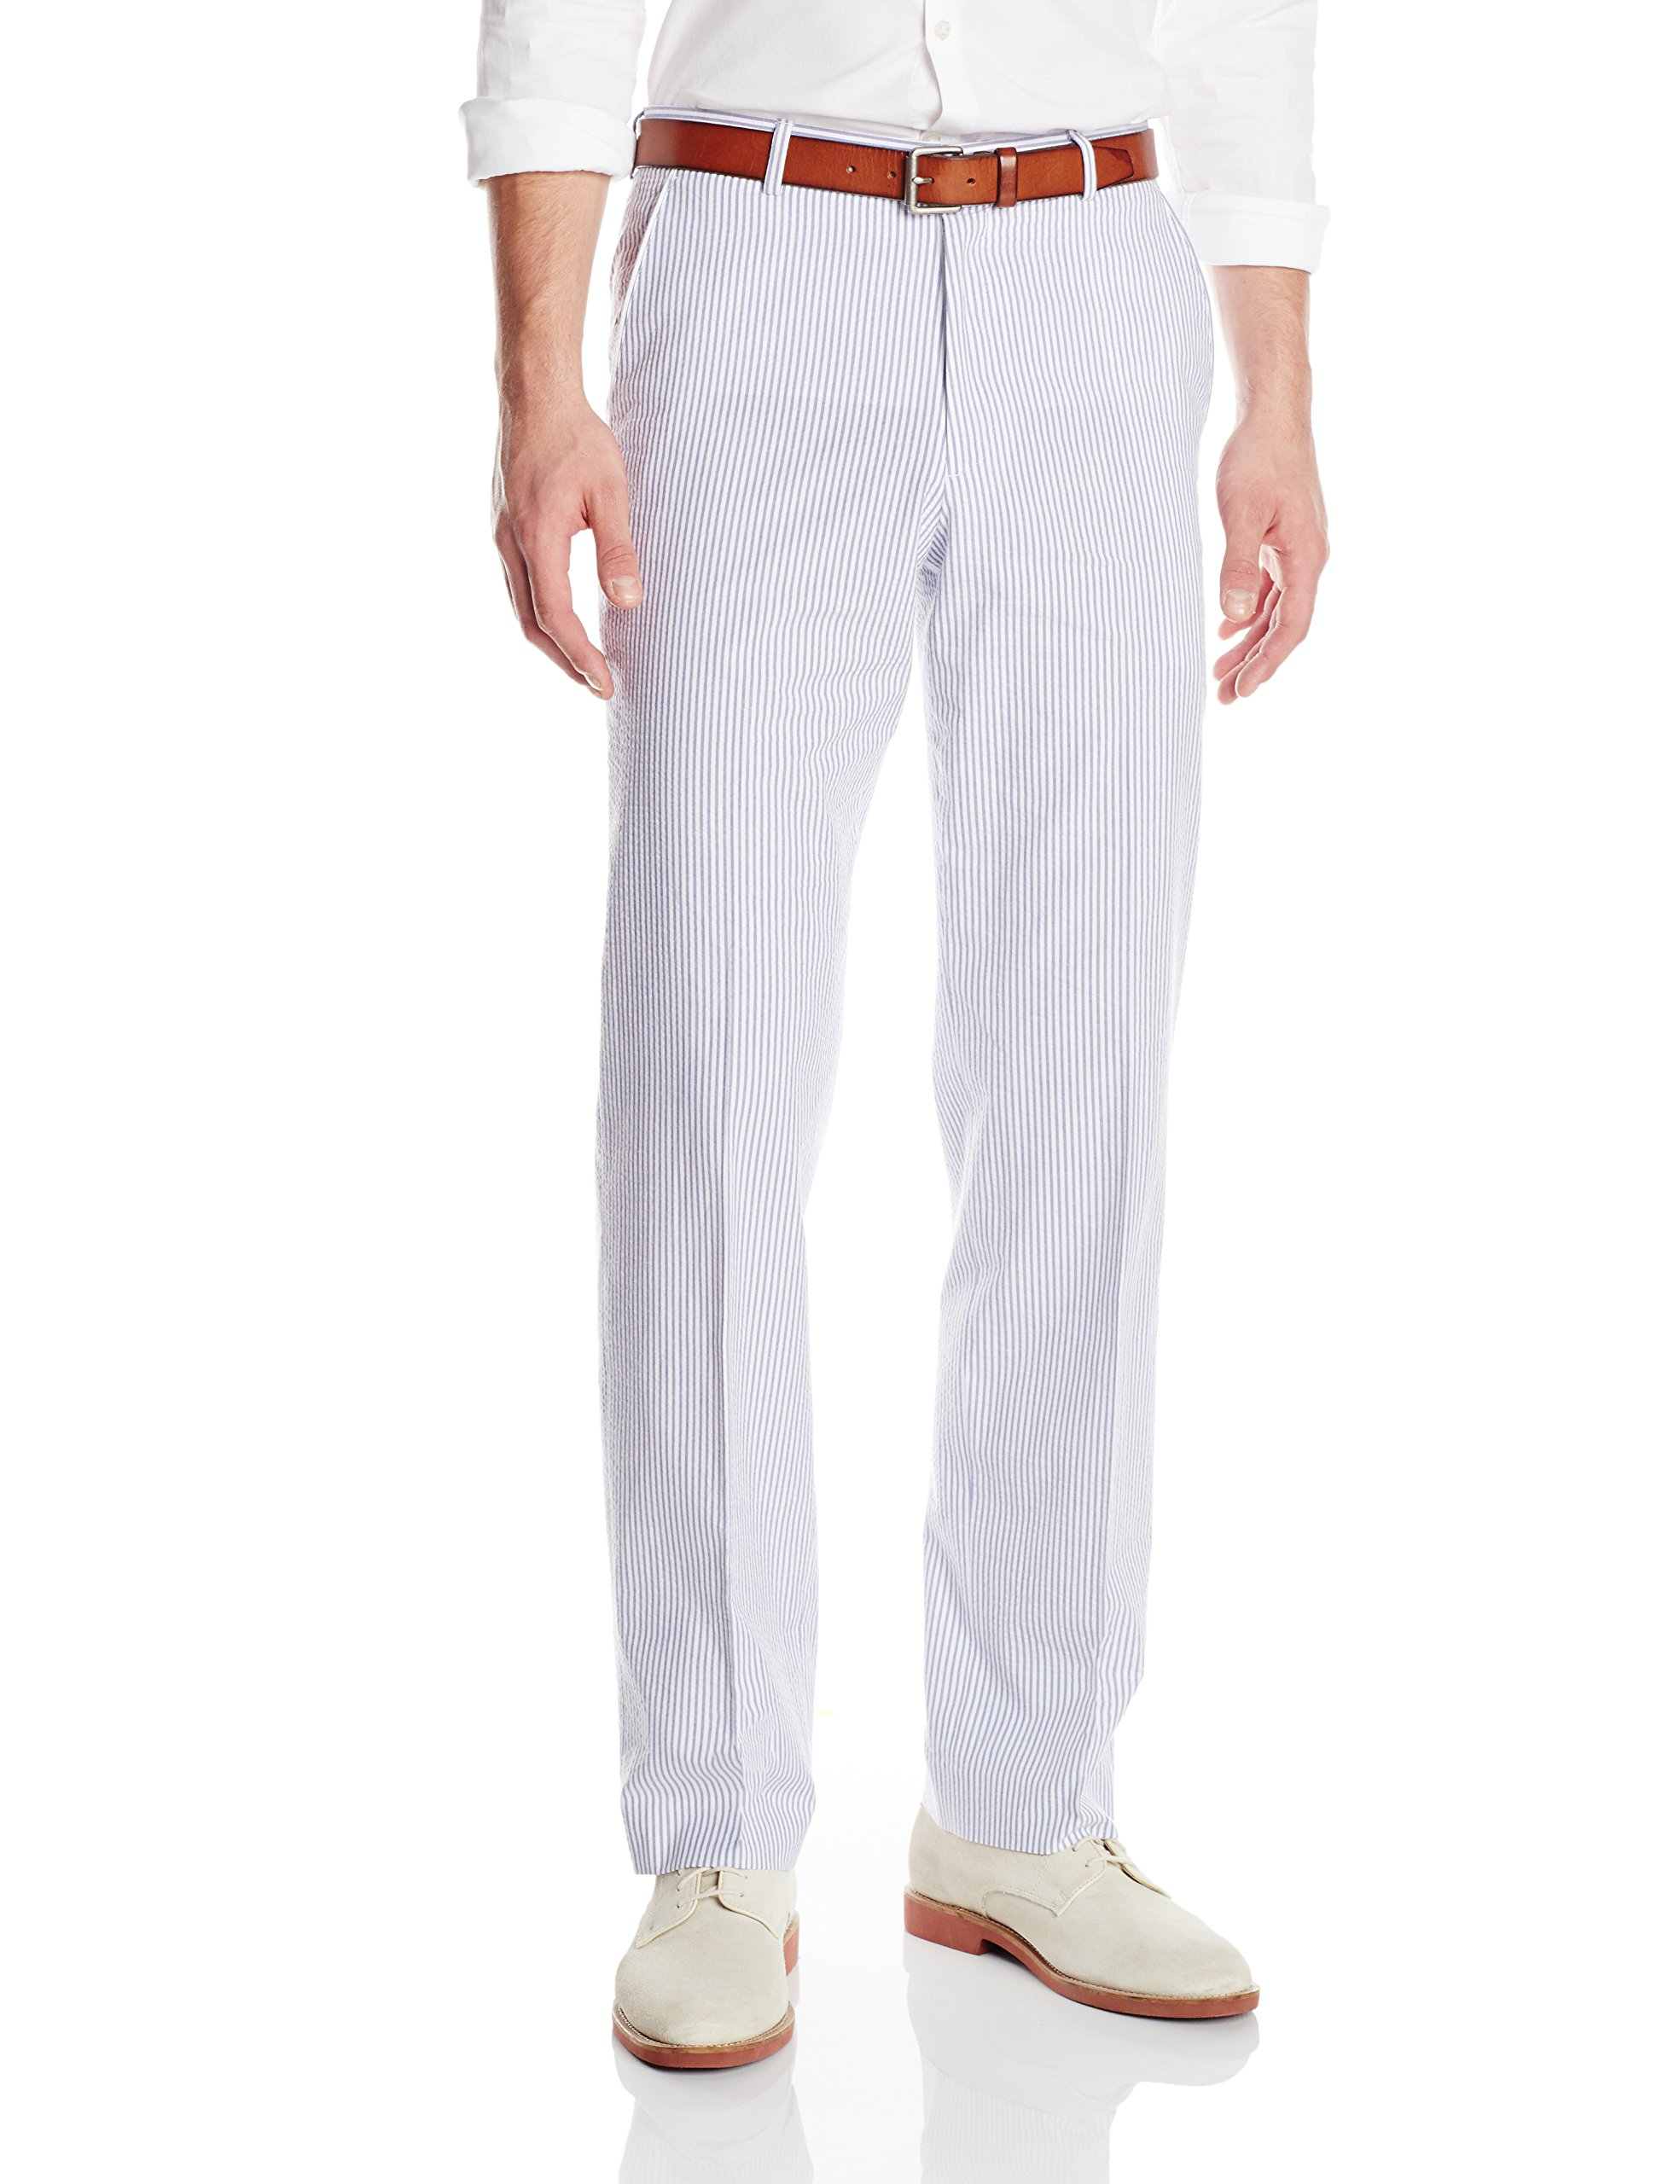 Palm Beach Men's Oxford Seersucker Suit Separate Pant, Navy/White, 34 Regular by Palm Beach